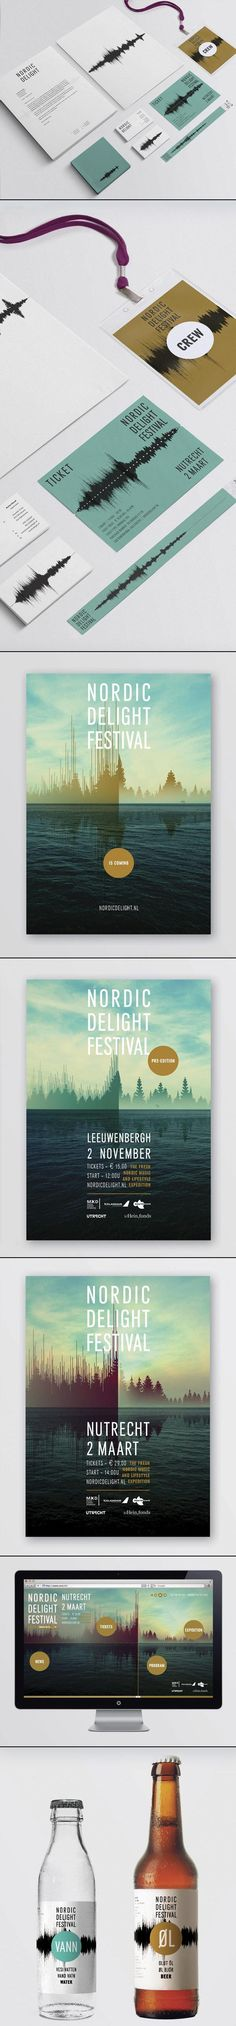 Nordic Delight Festival - Corporate Identity by CLEVER°FRANKE